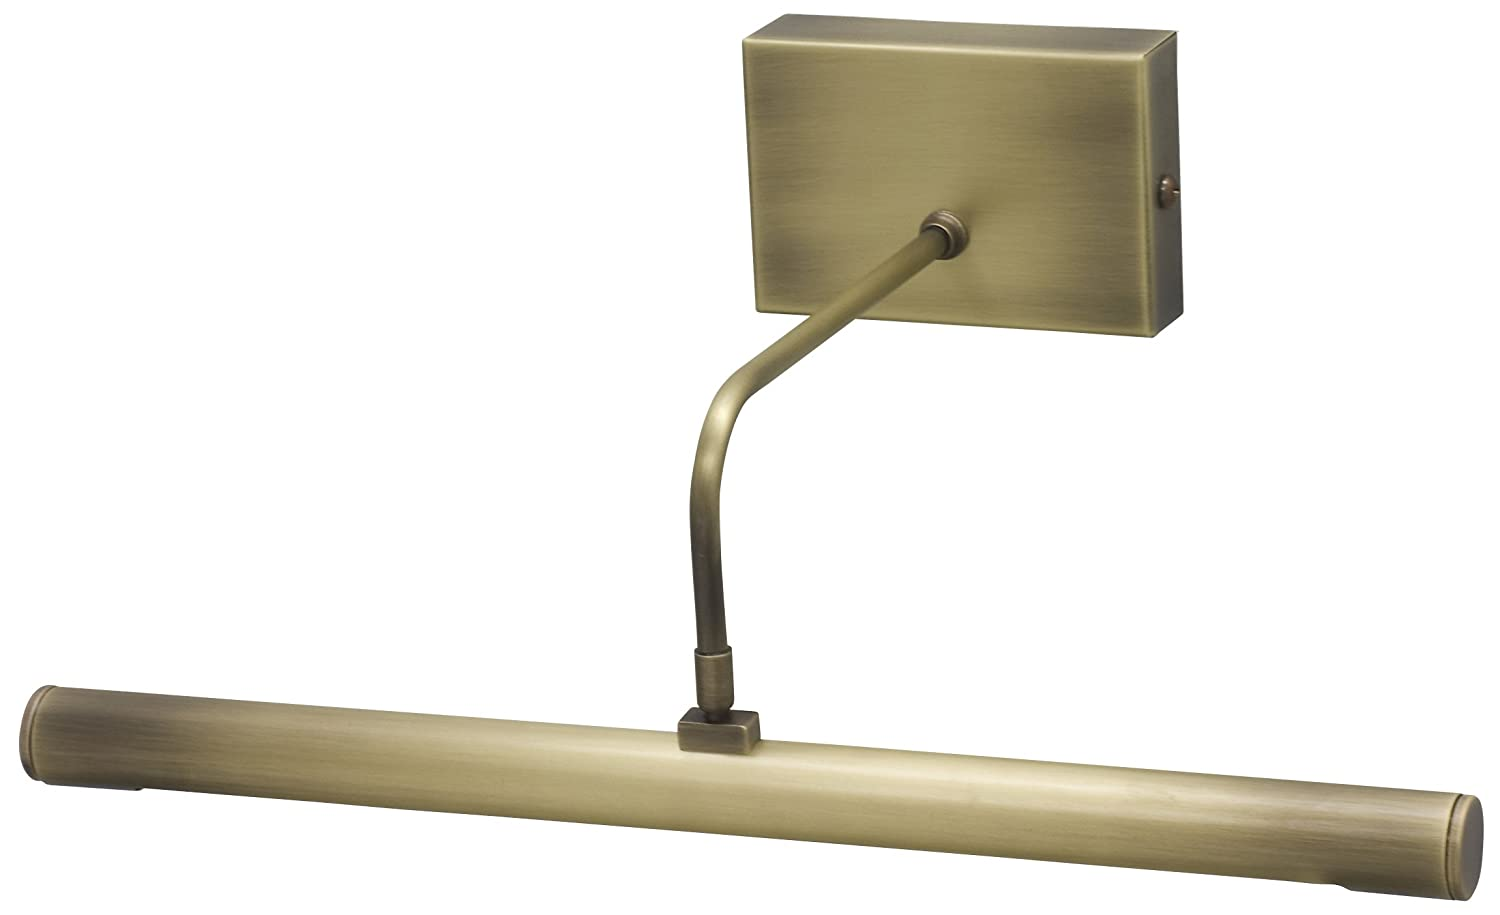 House of troy bsled14 71 slim line battery operated led picture house of troy bsled14 71 slim line battery operated led picture light 14 antique brass picture lights amazon arubaitofo Choice Image